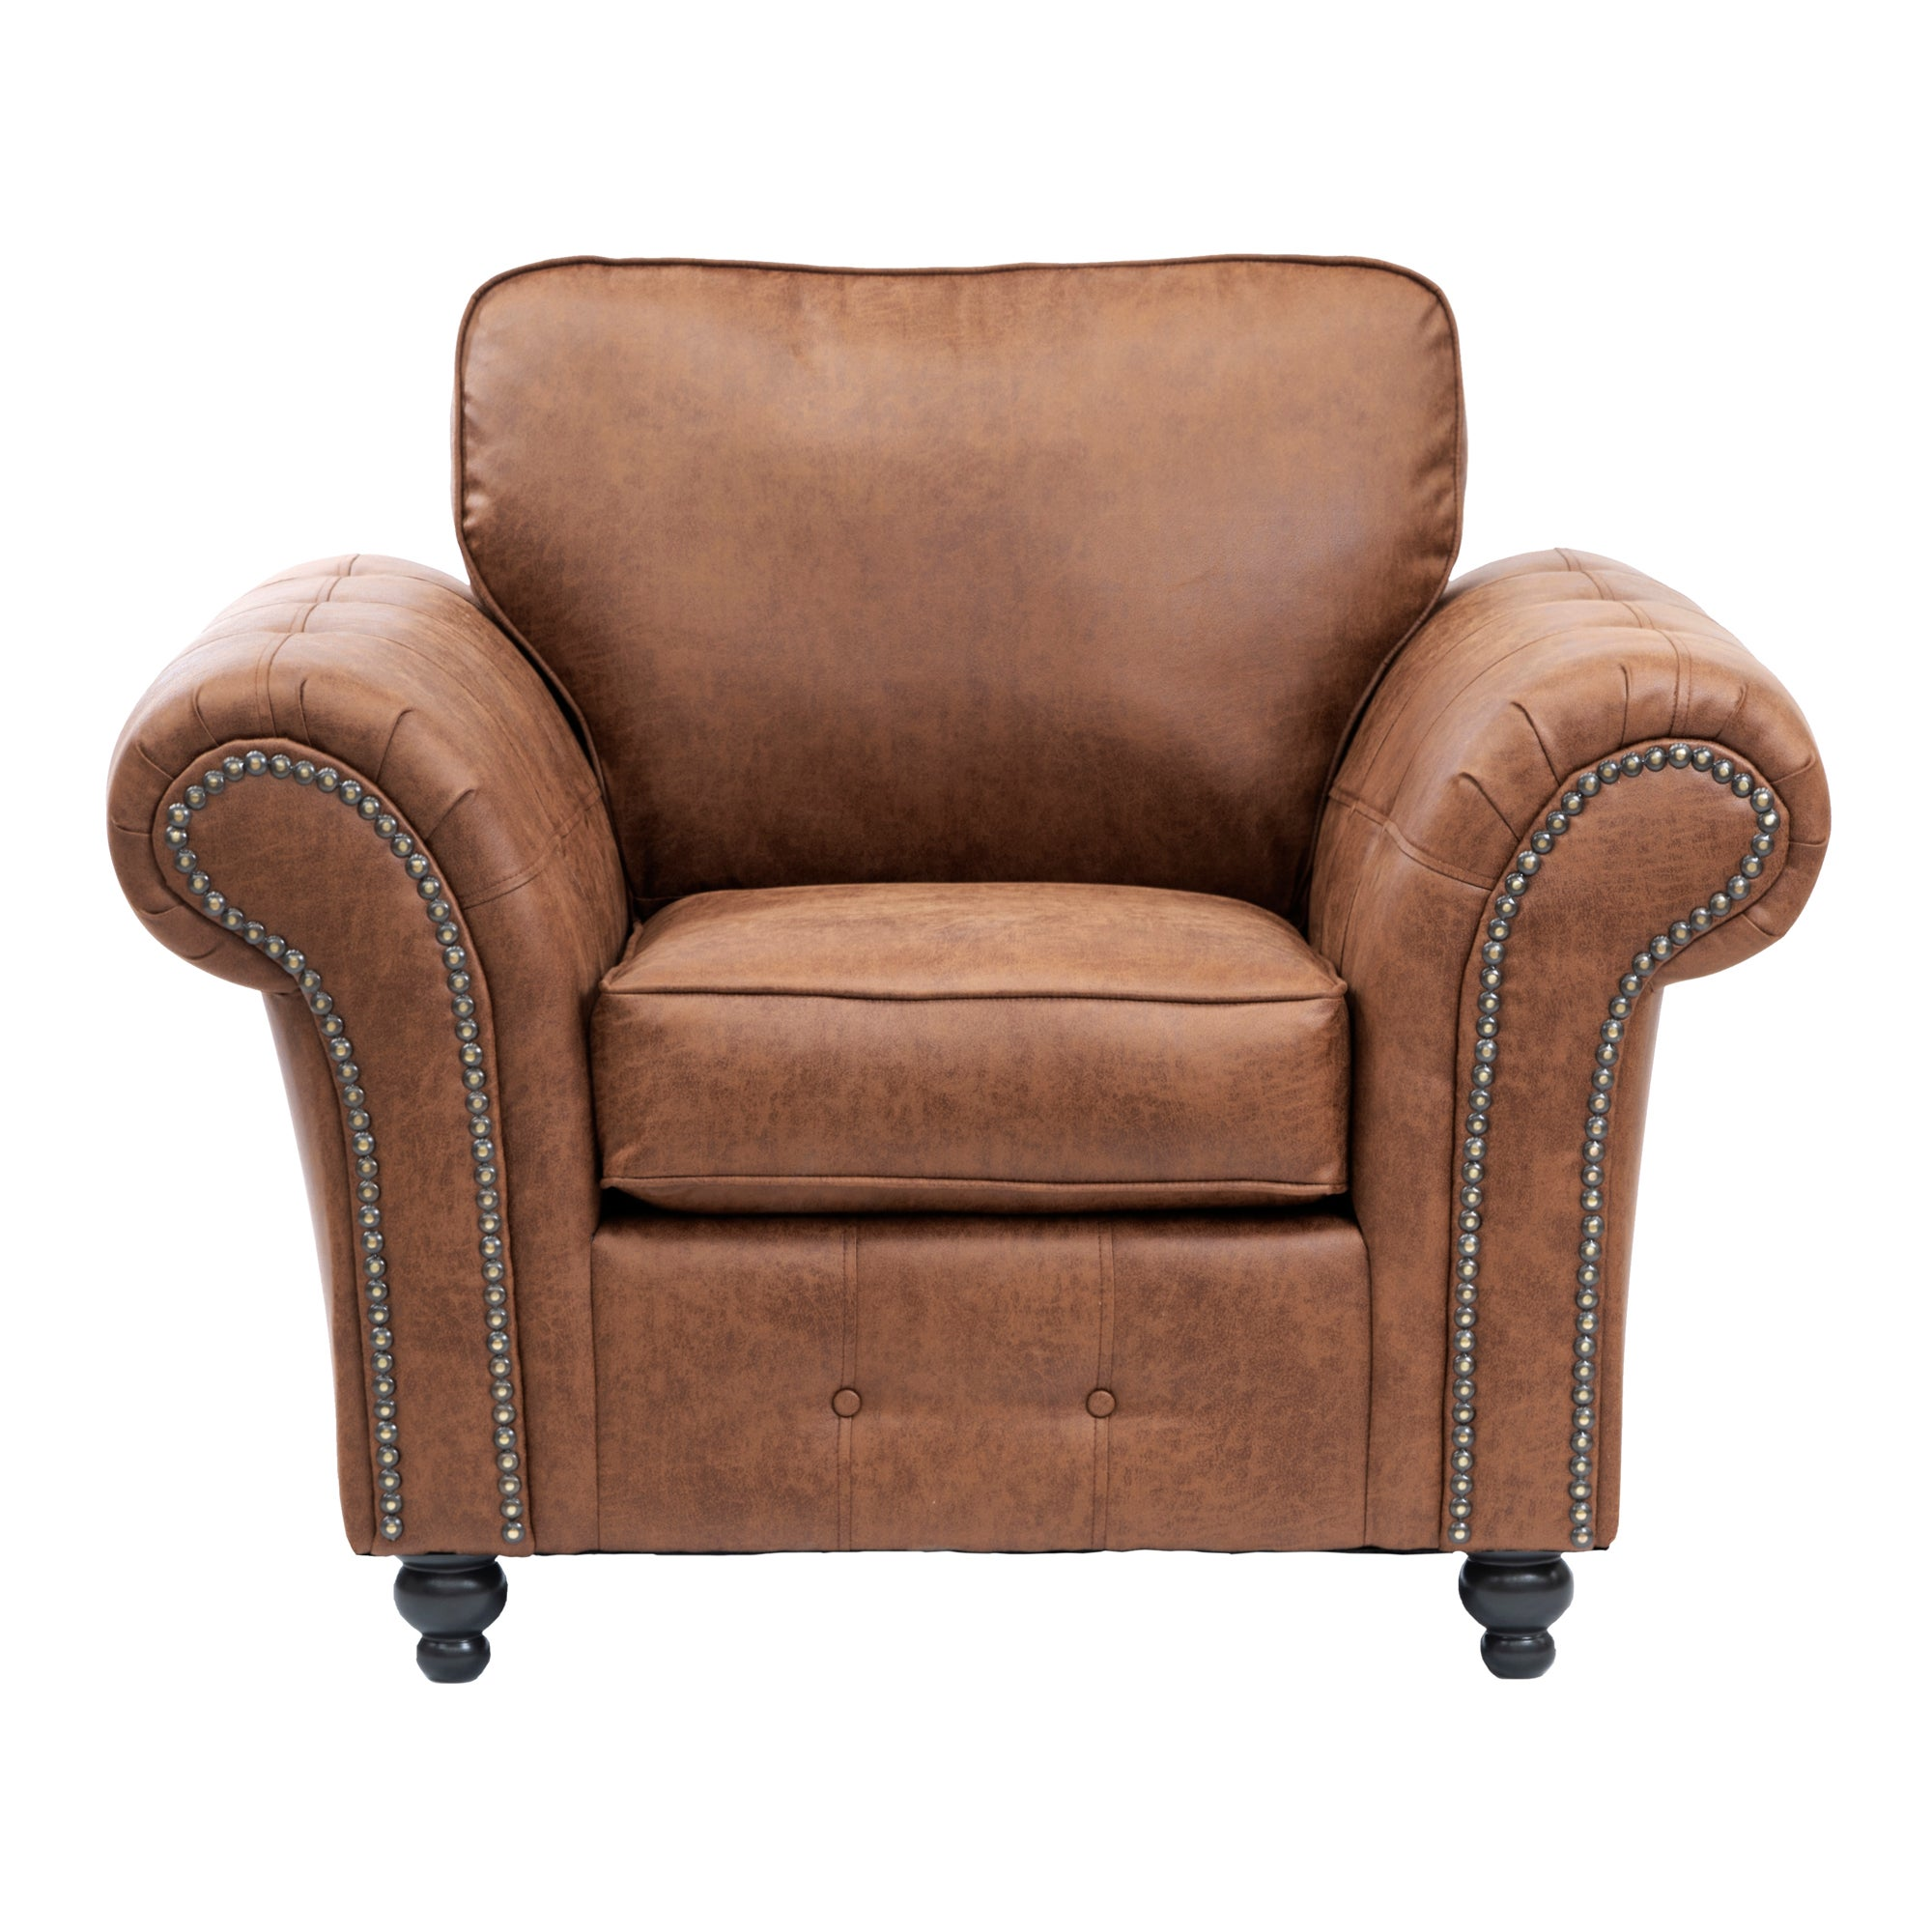 Oakland Faux Leather Armchair Brown